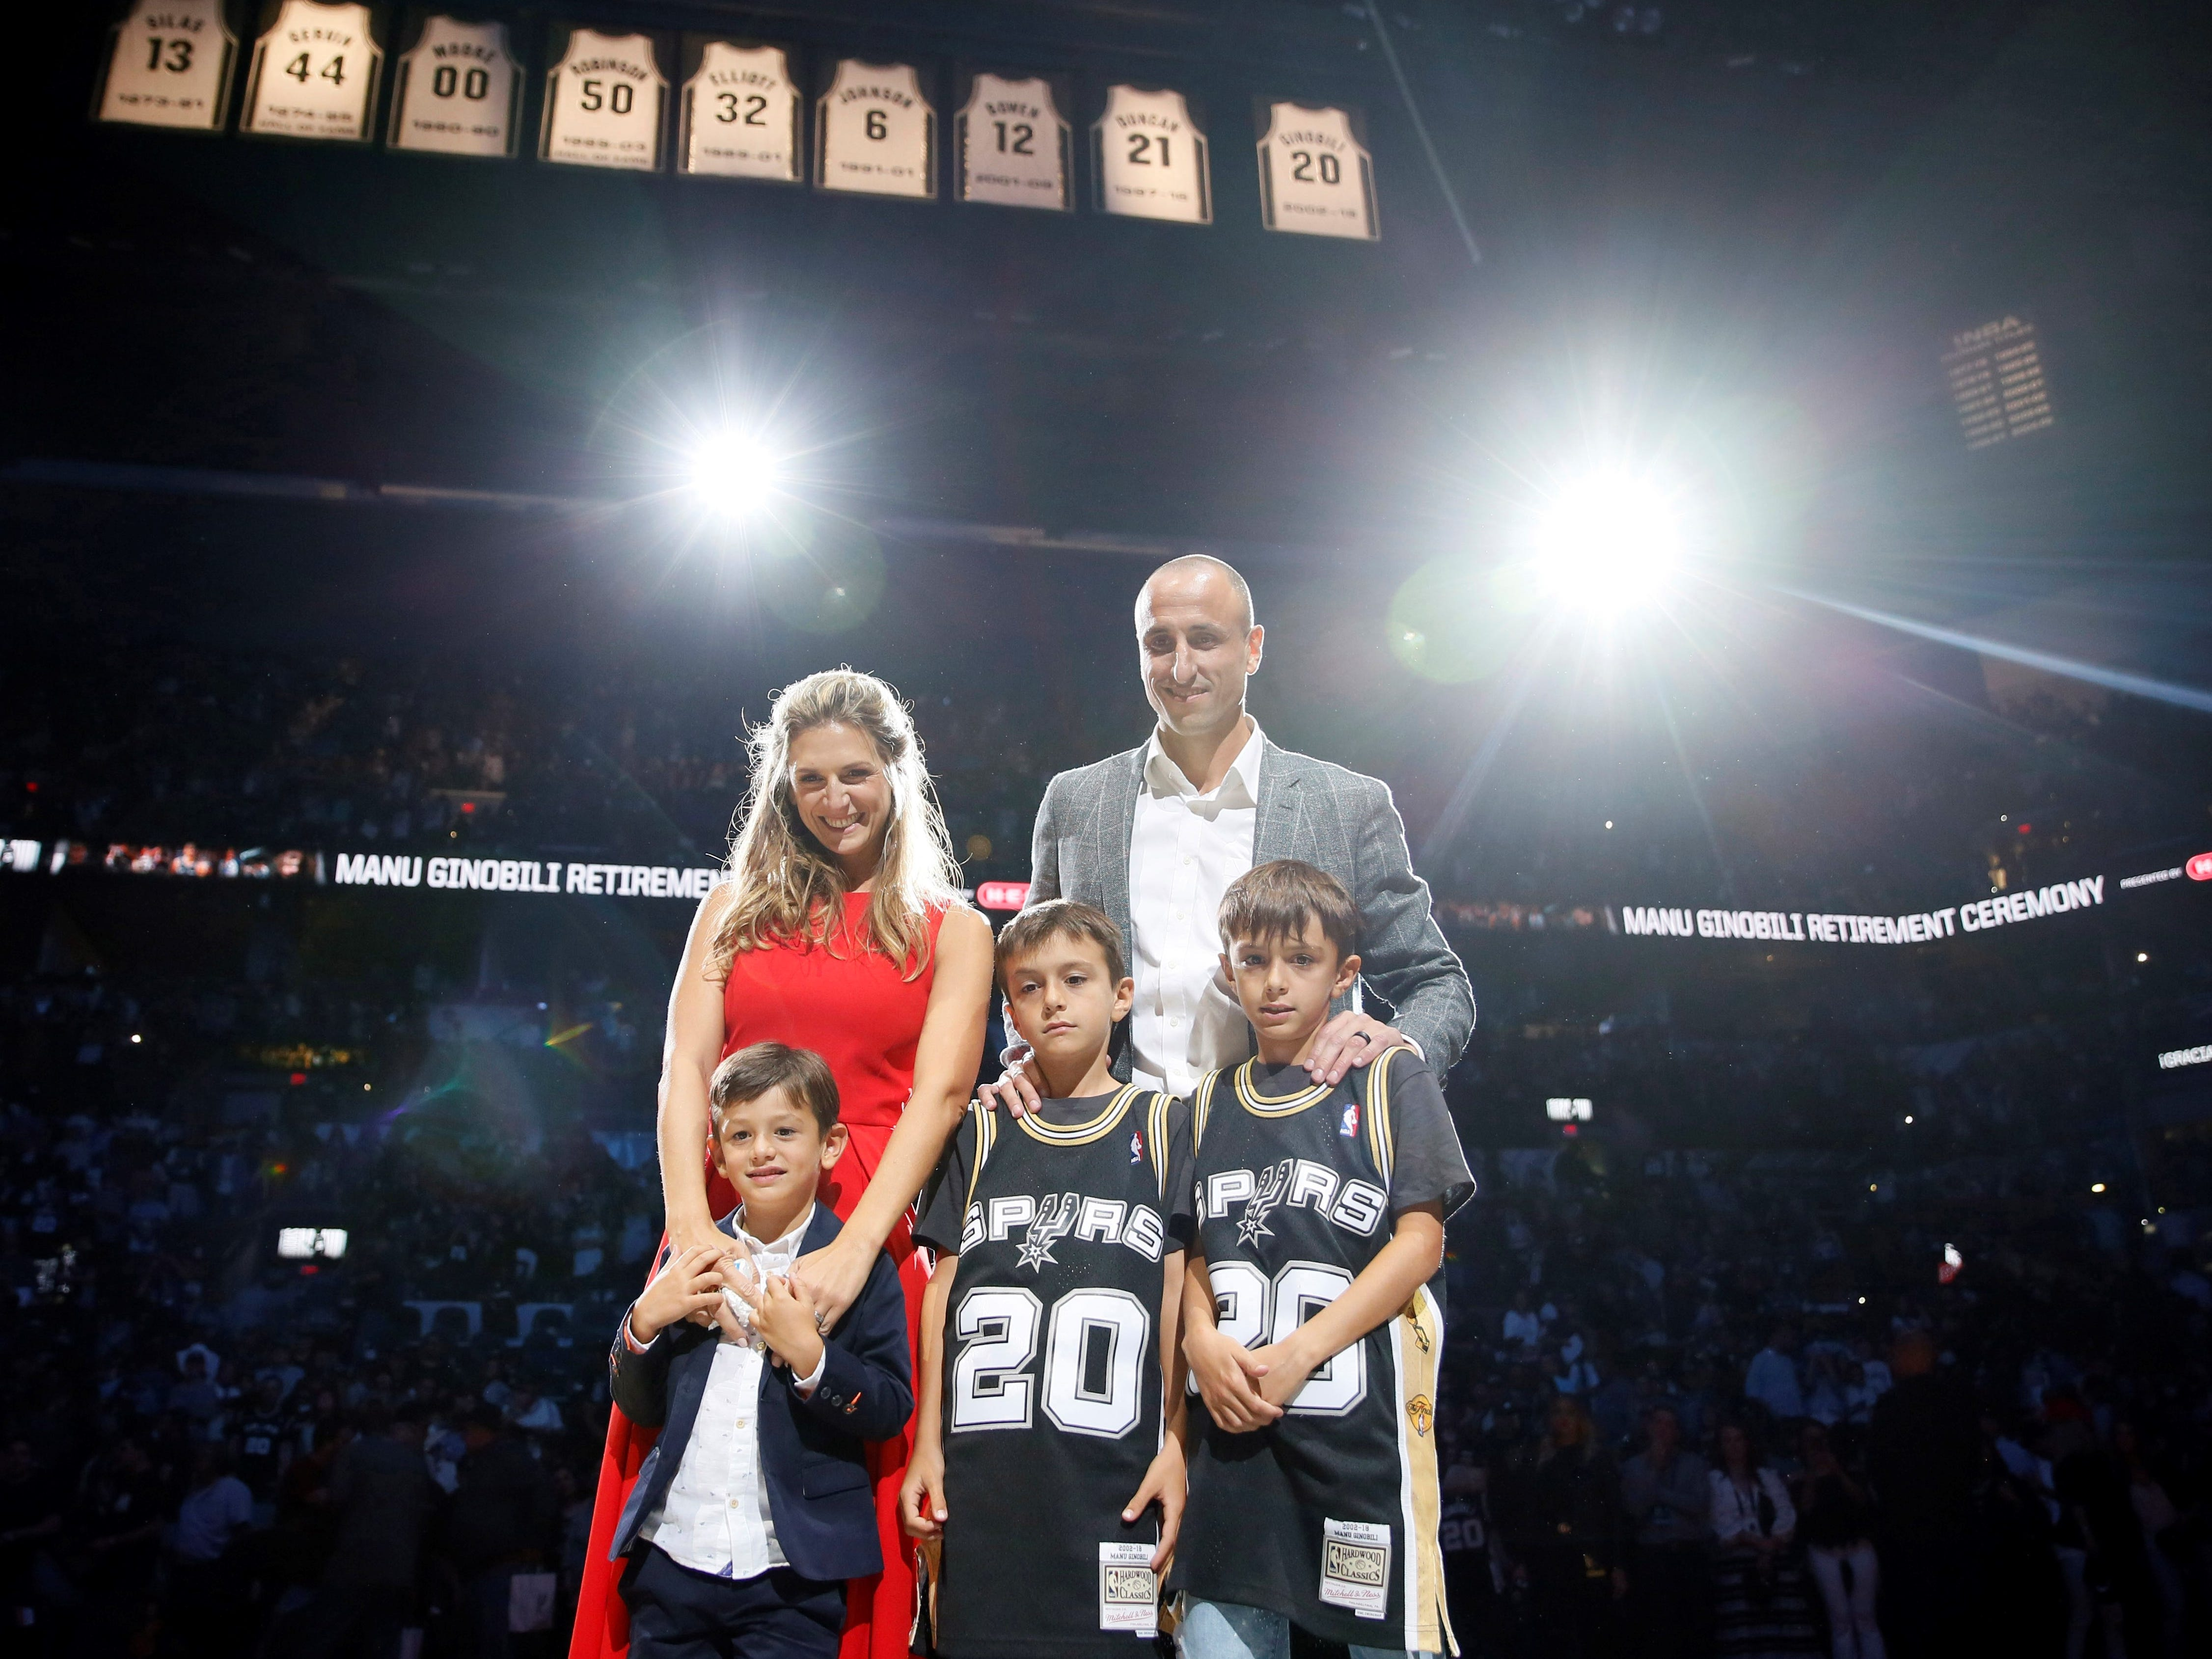 March 28: Spurs legend Manu Ginobili poses with his family after San Antonio retired his jersey in an emotional ceremony.